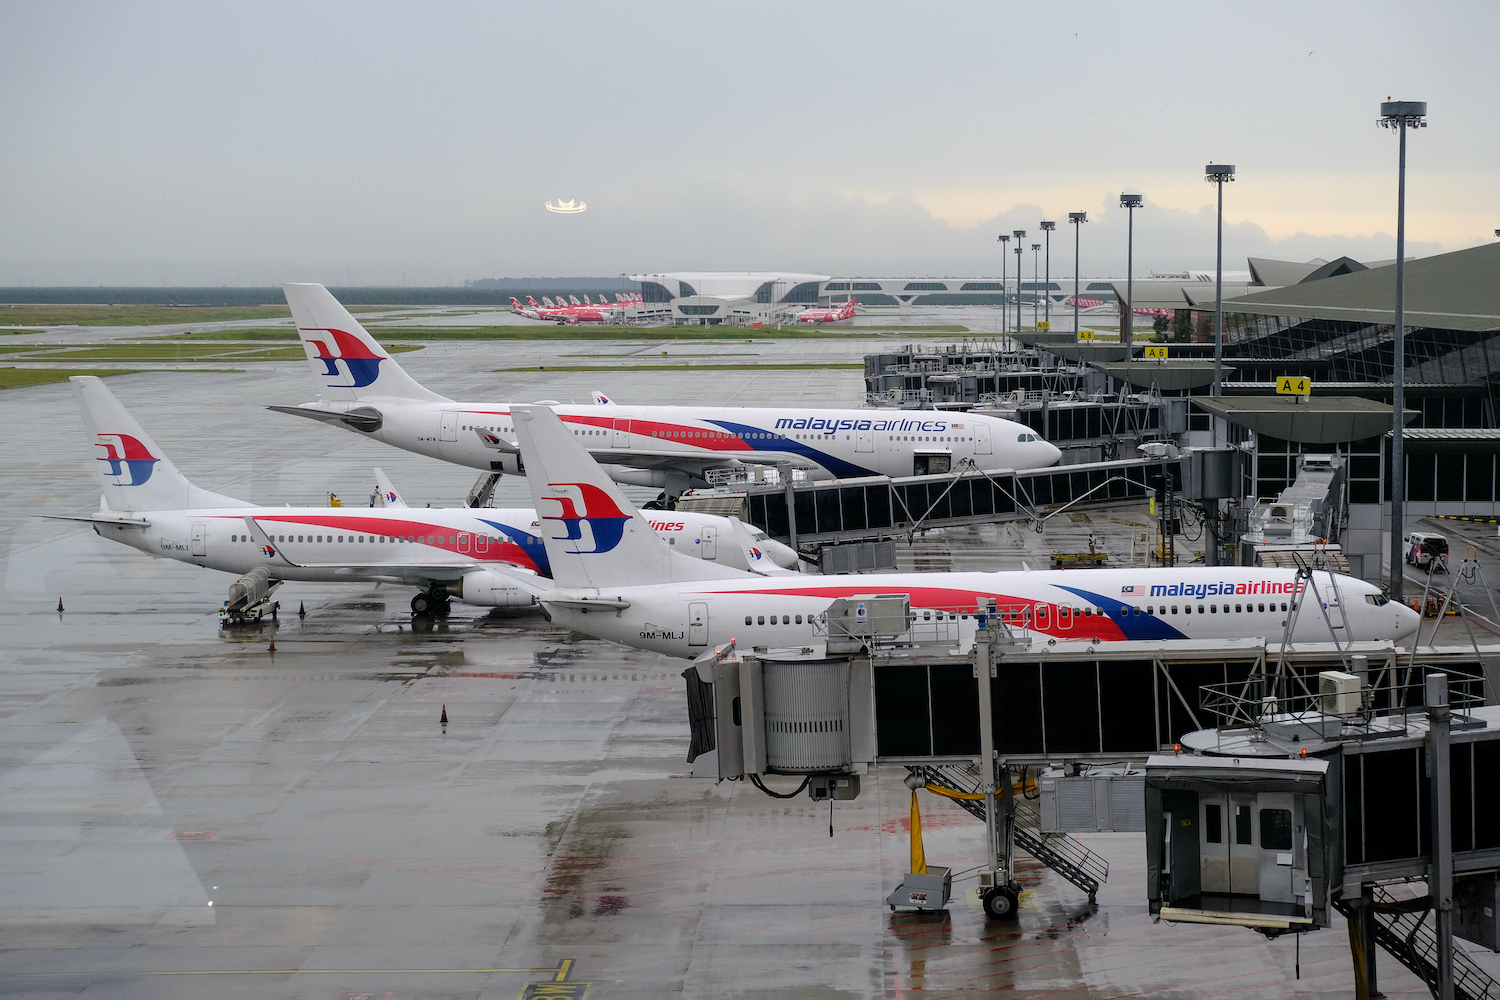 Malaysia Airlines aircraft stand on the tarmac at Kuala Lumpur International Airport on May 13. (Bloomberg Photo)